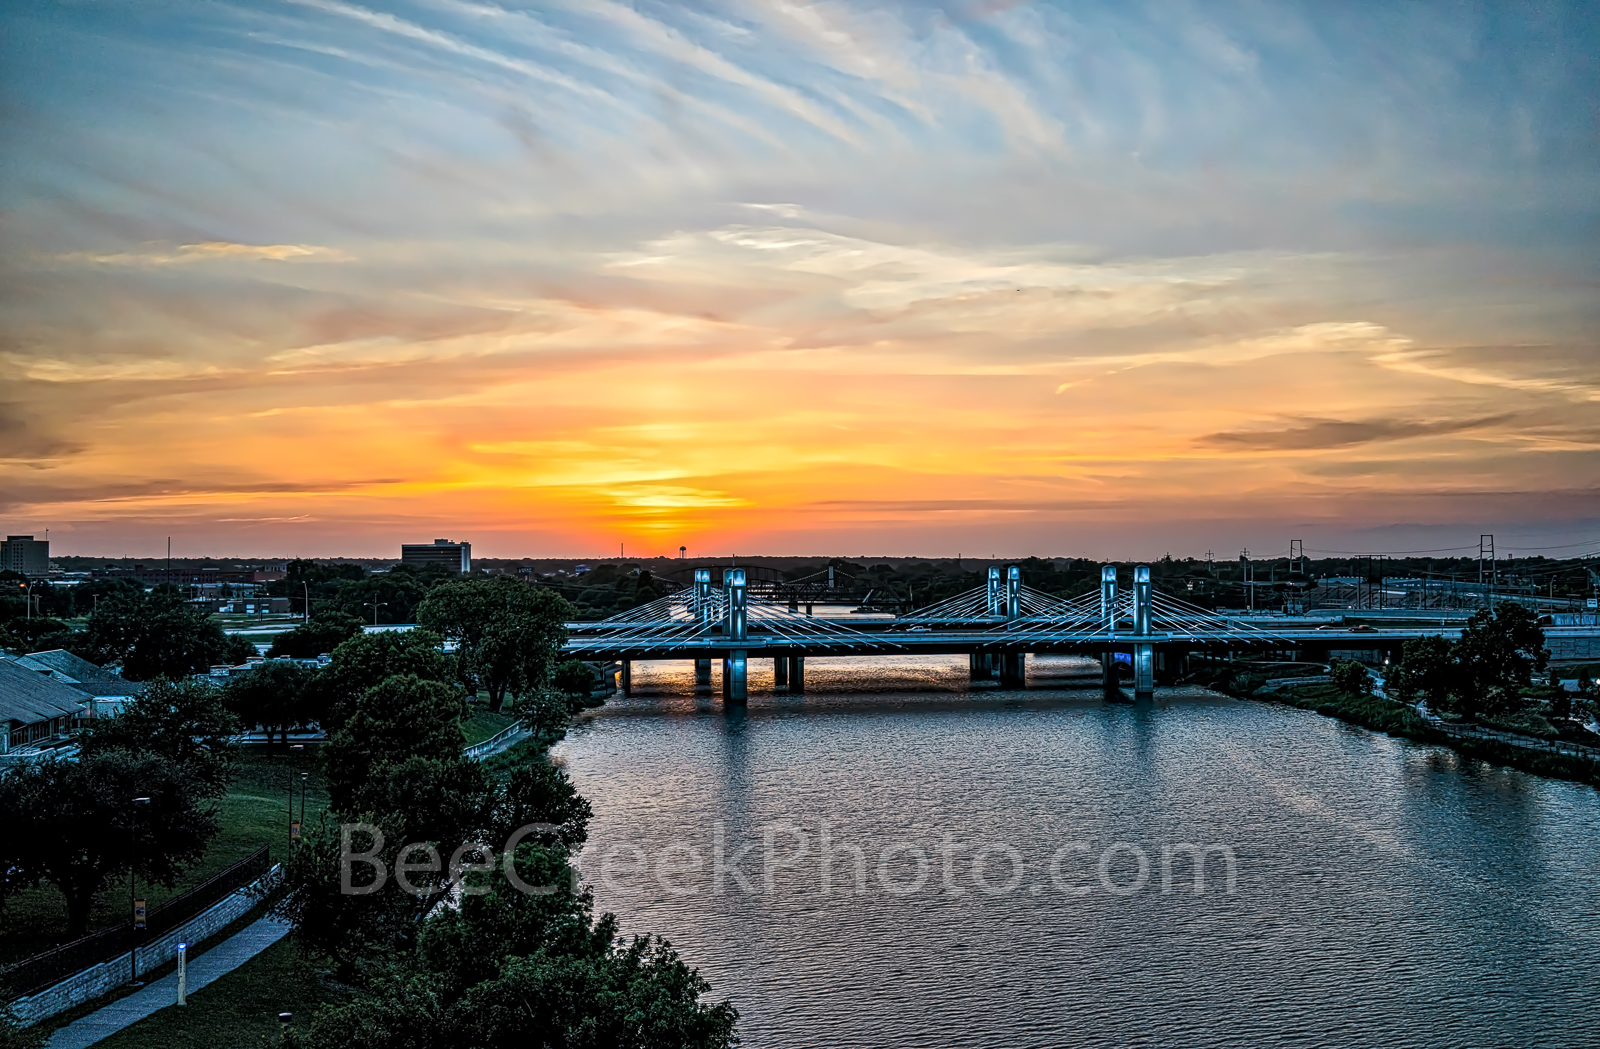 Waco, Brazos River bridge, sunset, aerial, downtown, IH35 stay bridge, colorful led, texas, Jack Kultgen Freeway,, photo